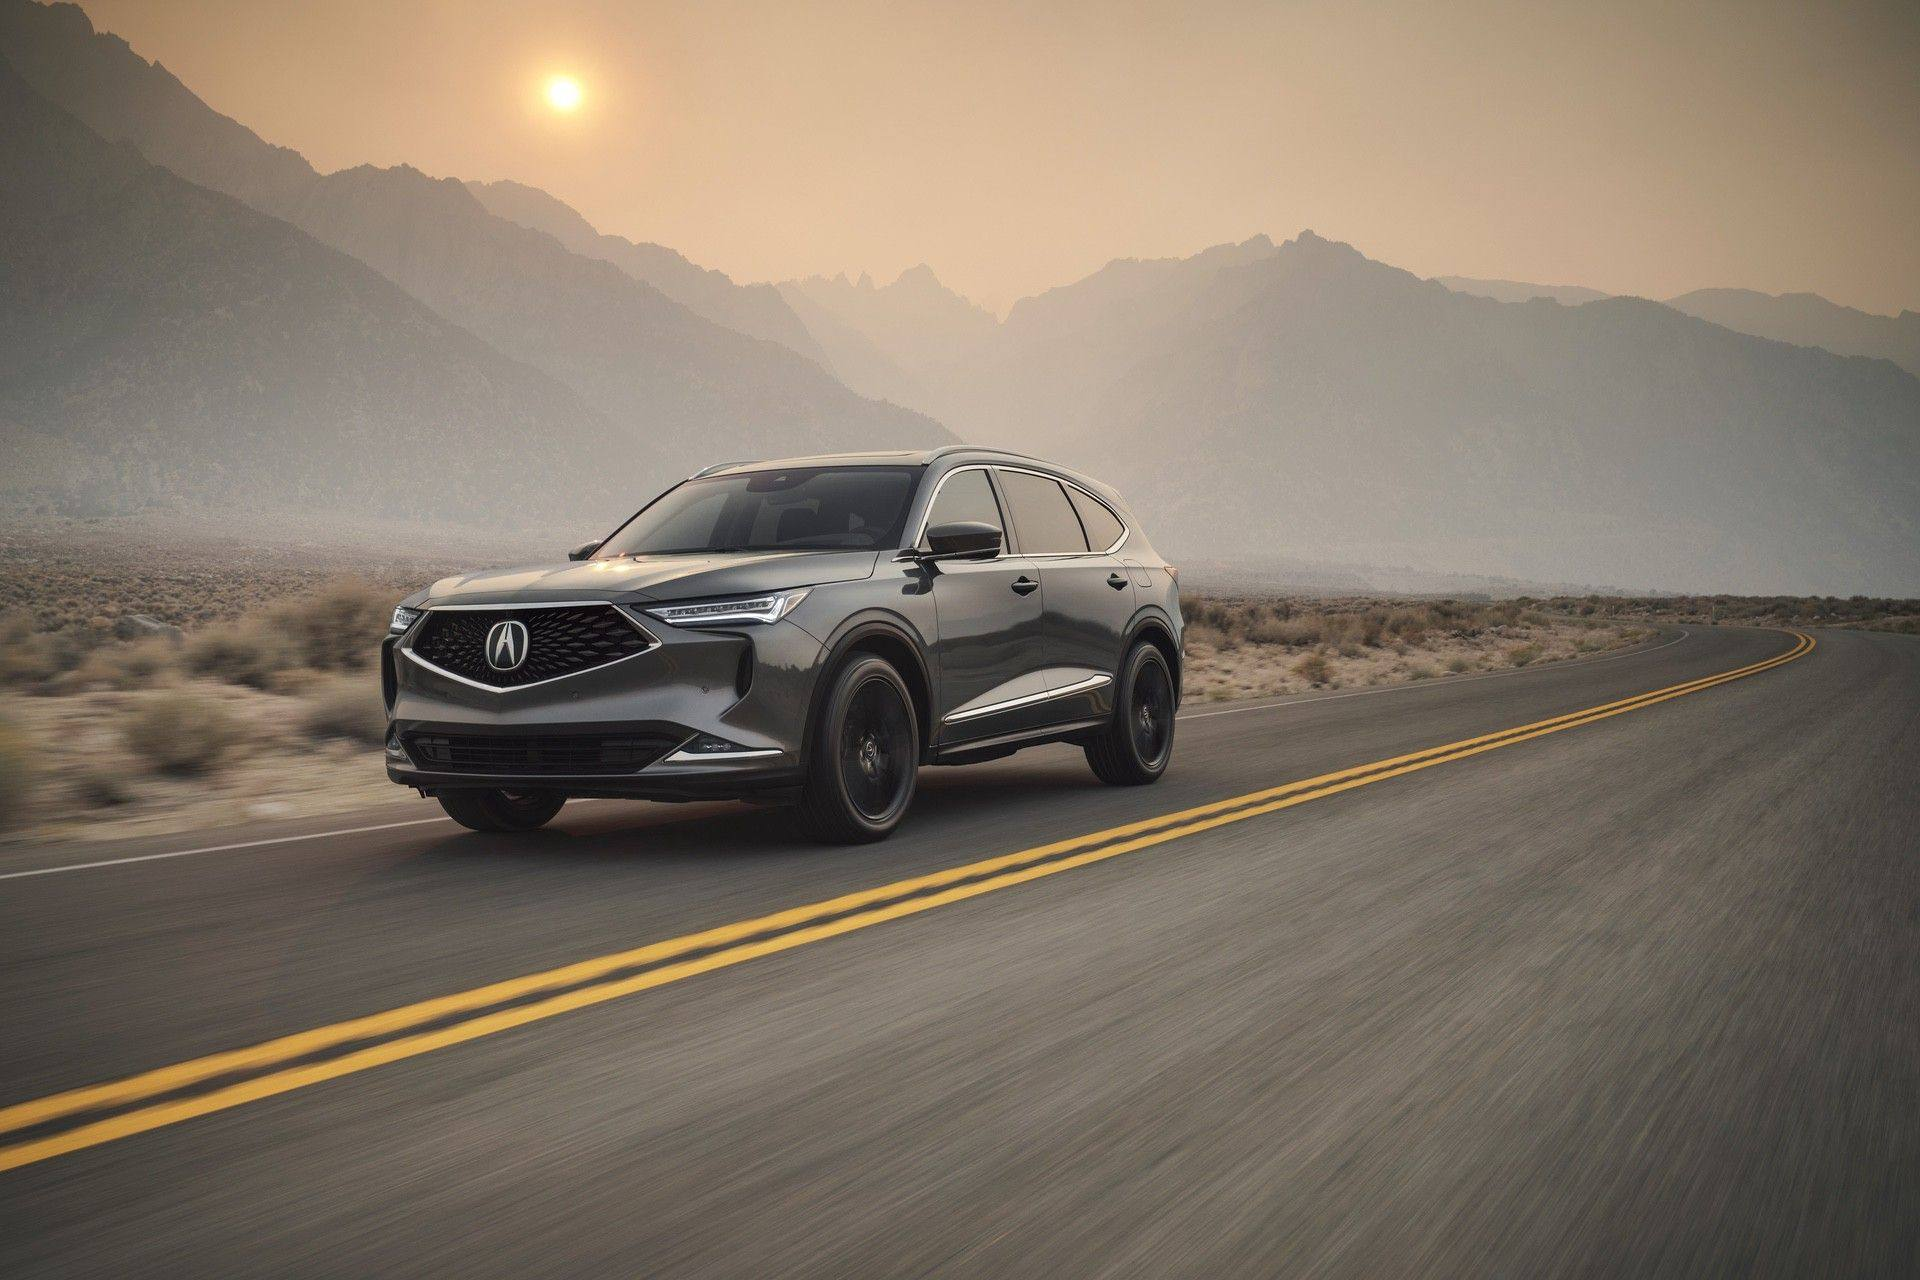 2022 MDX SH-AWD Advance Liquid Carbon Metallic 3/4 Front Passenger Exterior running highway Accessory Gloss Black Wheels